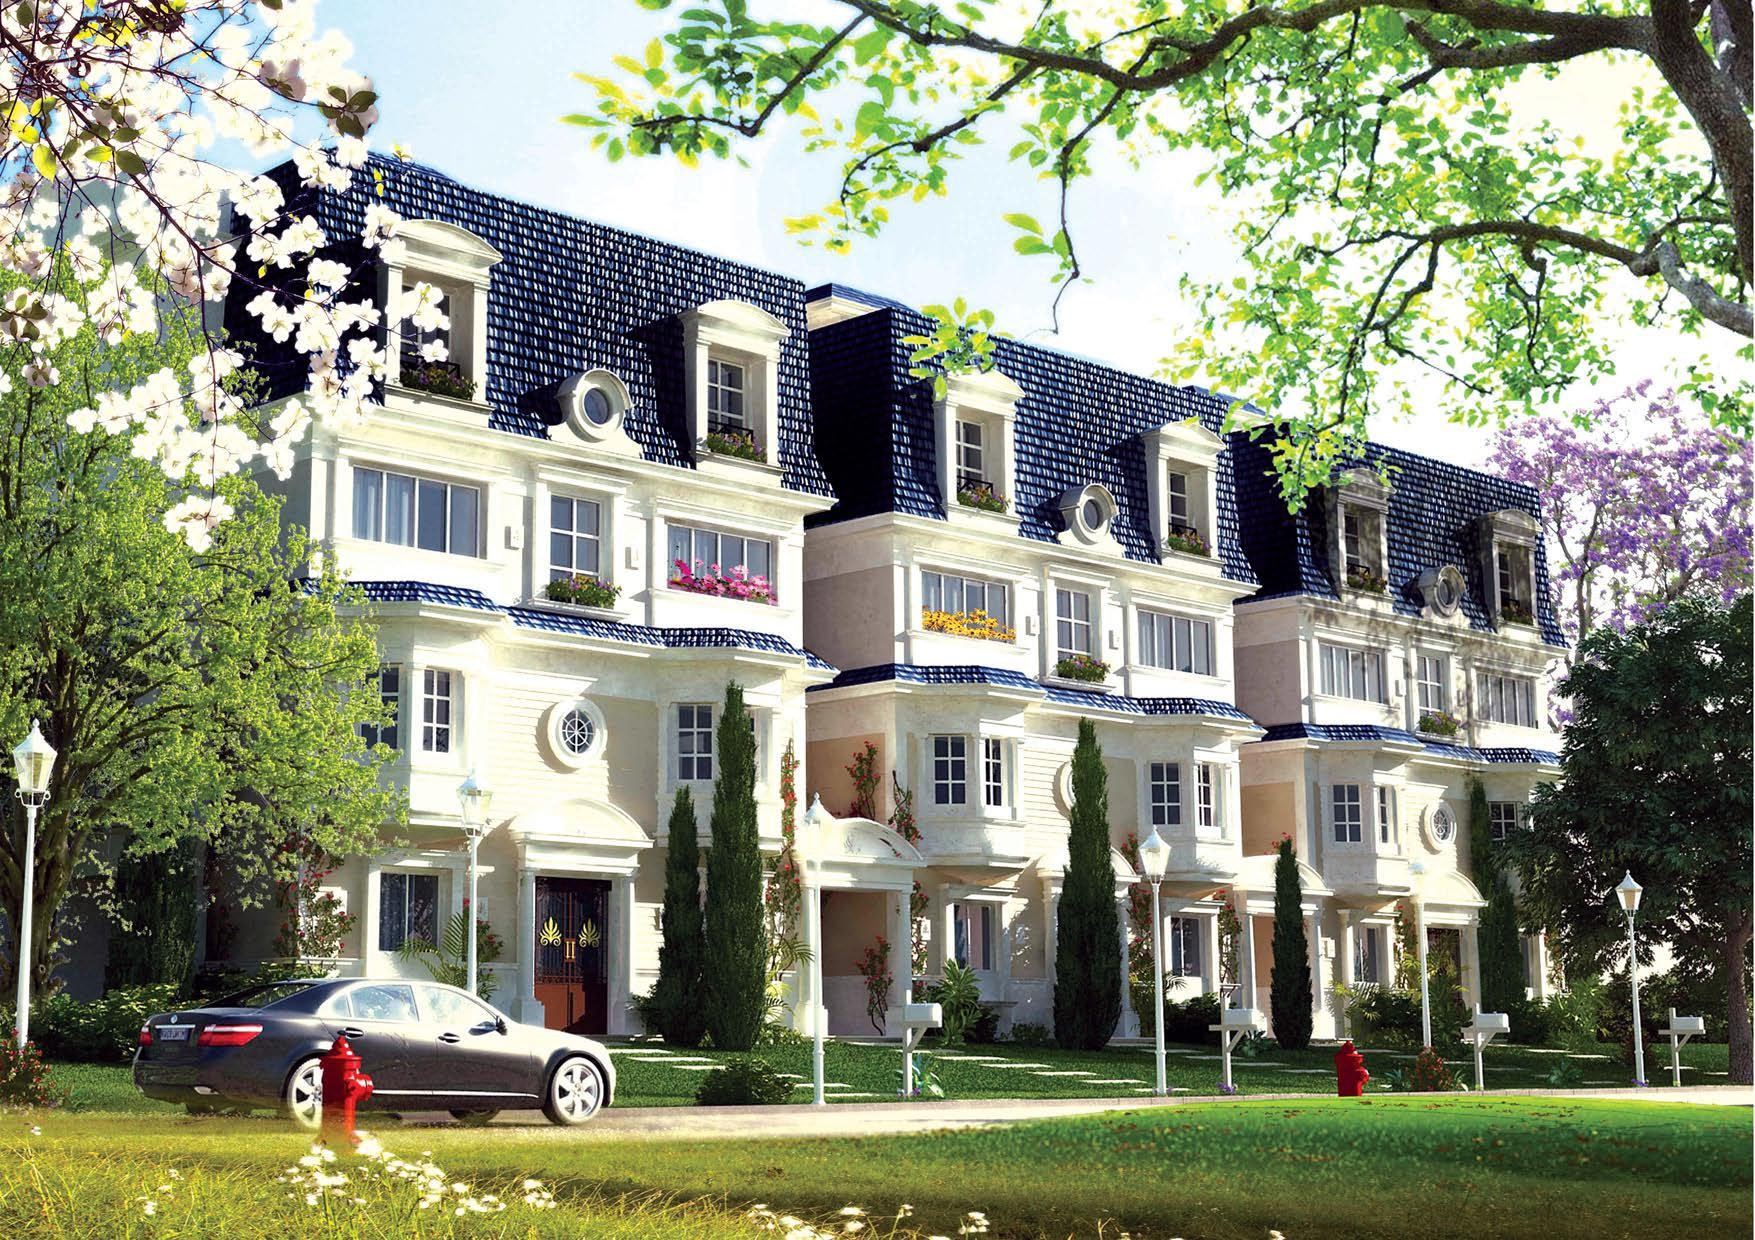 Town houses for sale in mountain view icity new cairo